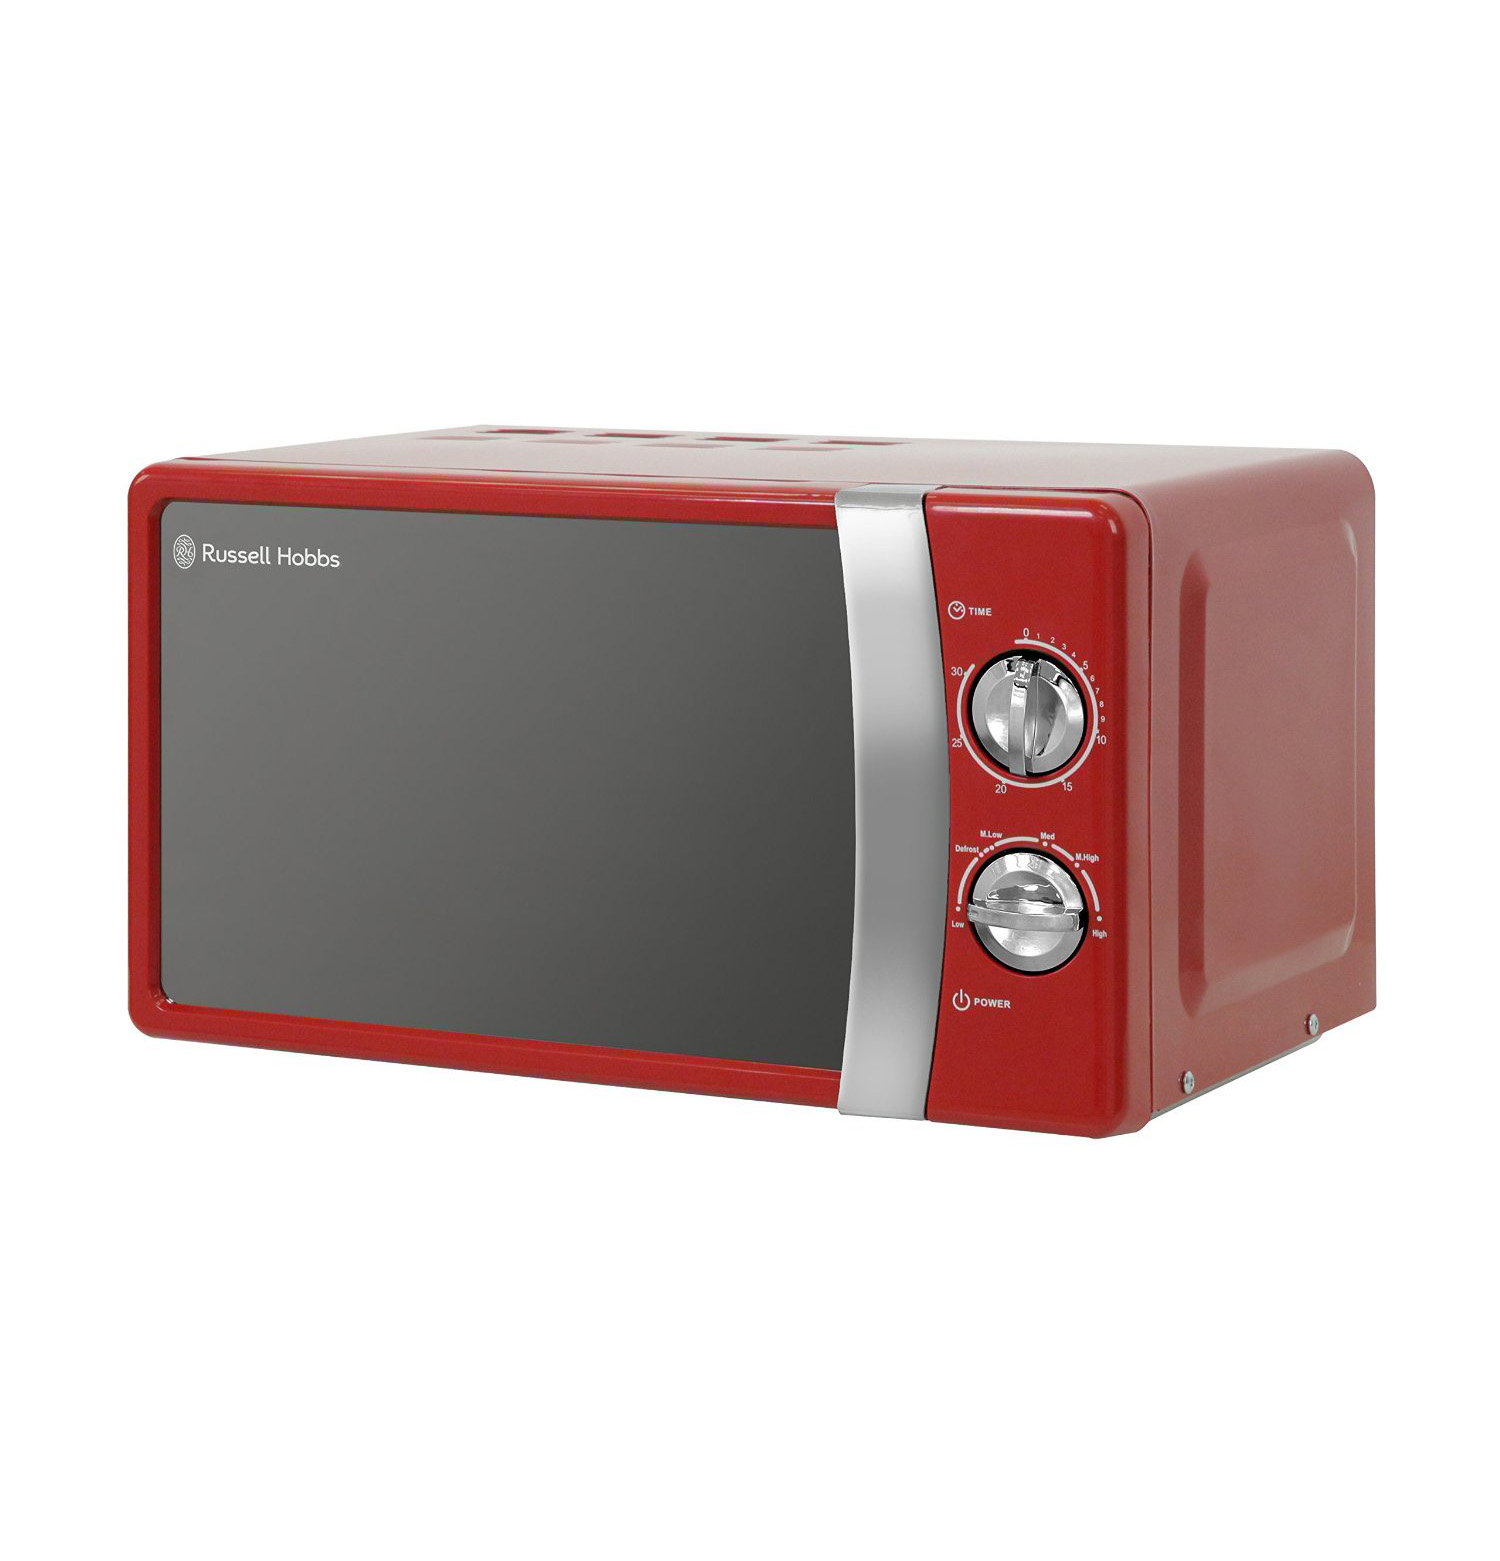 Russell Hobbs Rhmm701r Red Microwave Review Microwave Review